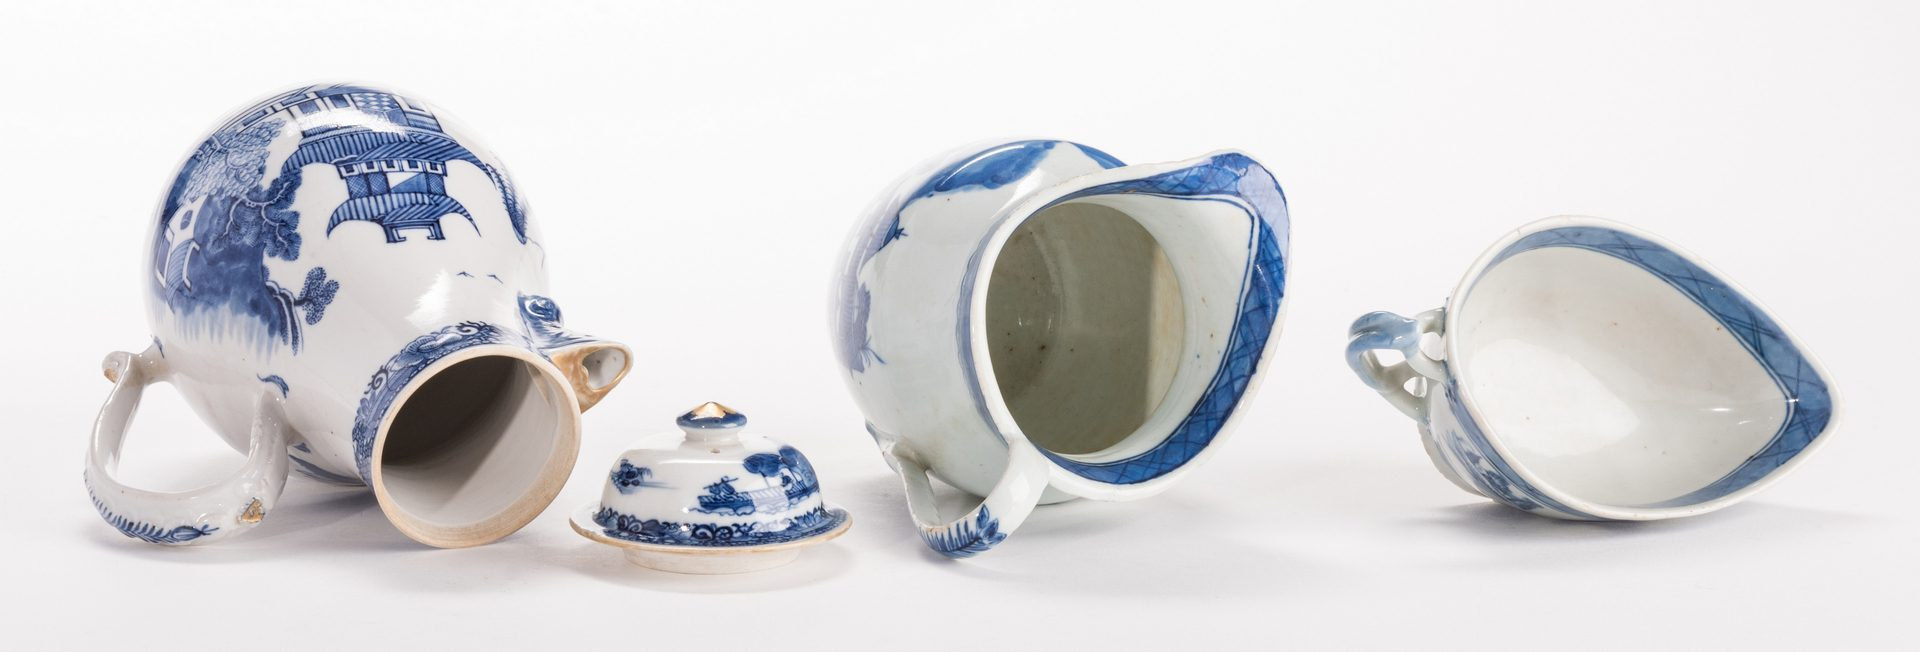 Lot 312: Chinese Export Porcelain, 12 pcs inc. coffeepot